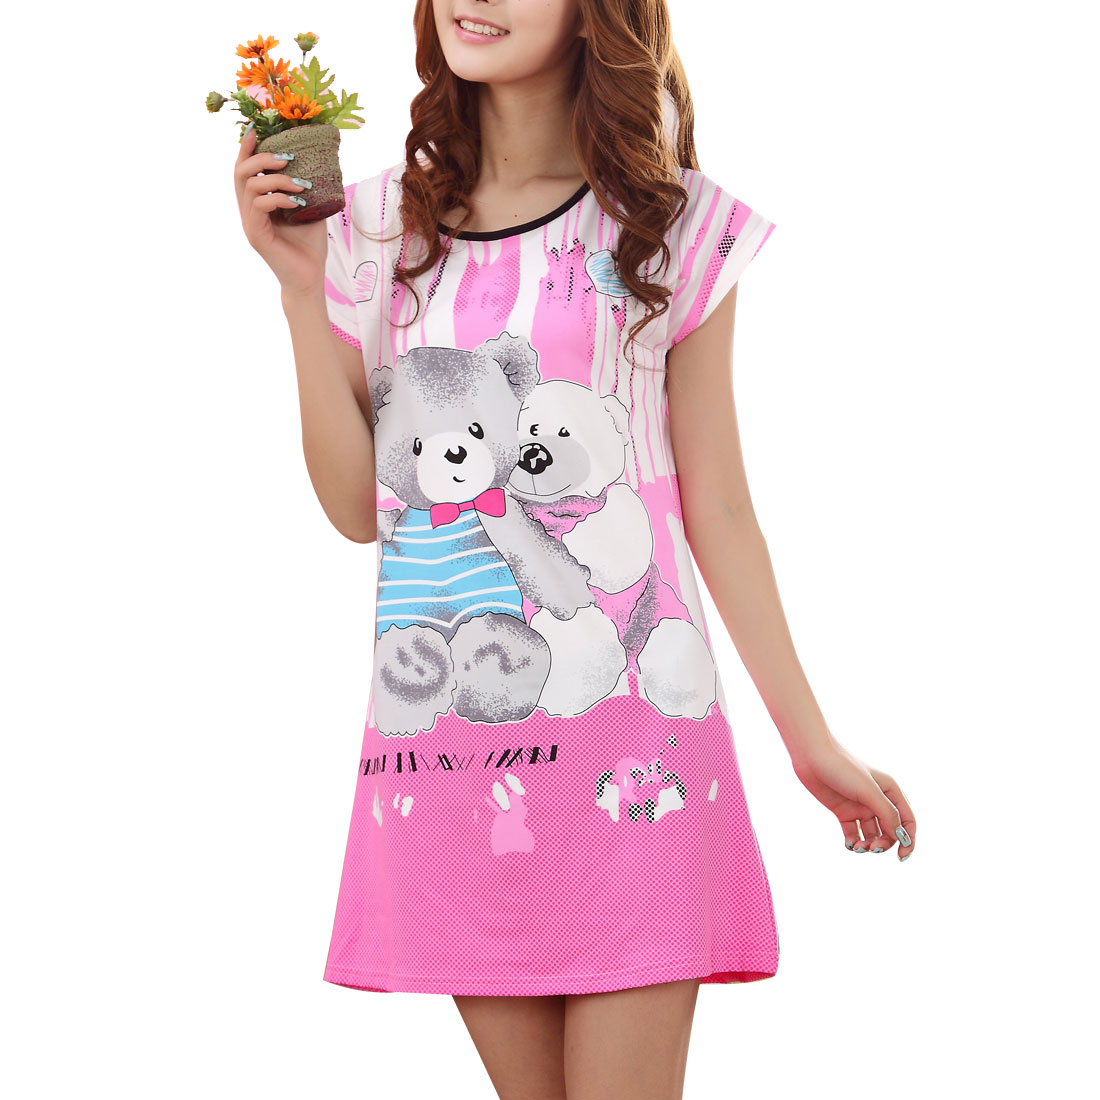 0108 Lady Cartoon Pattern Short Sleeves Round Neck Sleep Dress Nightgown XS